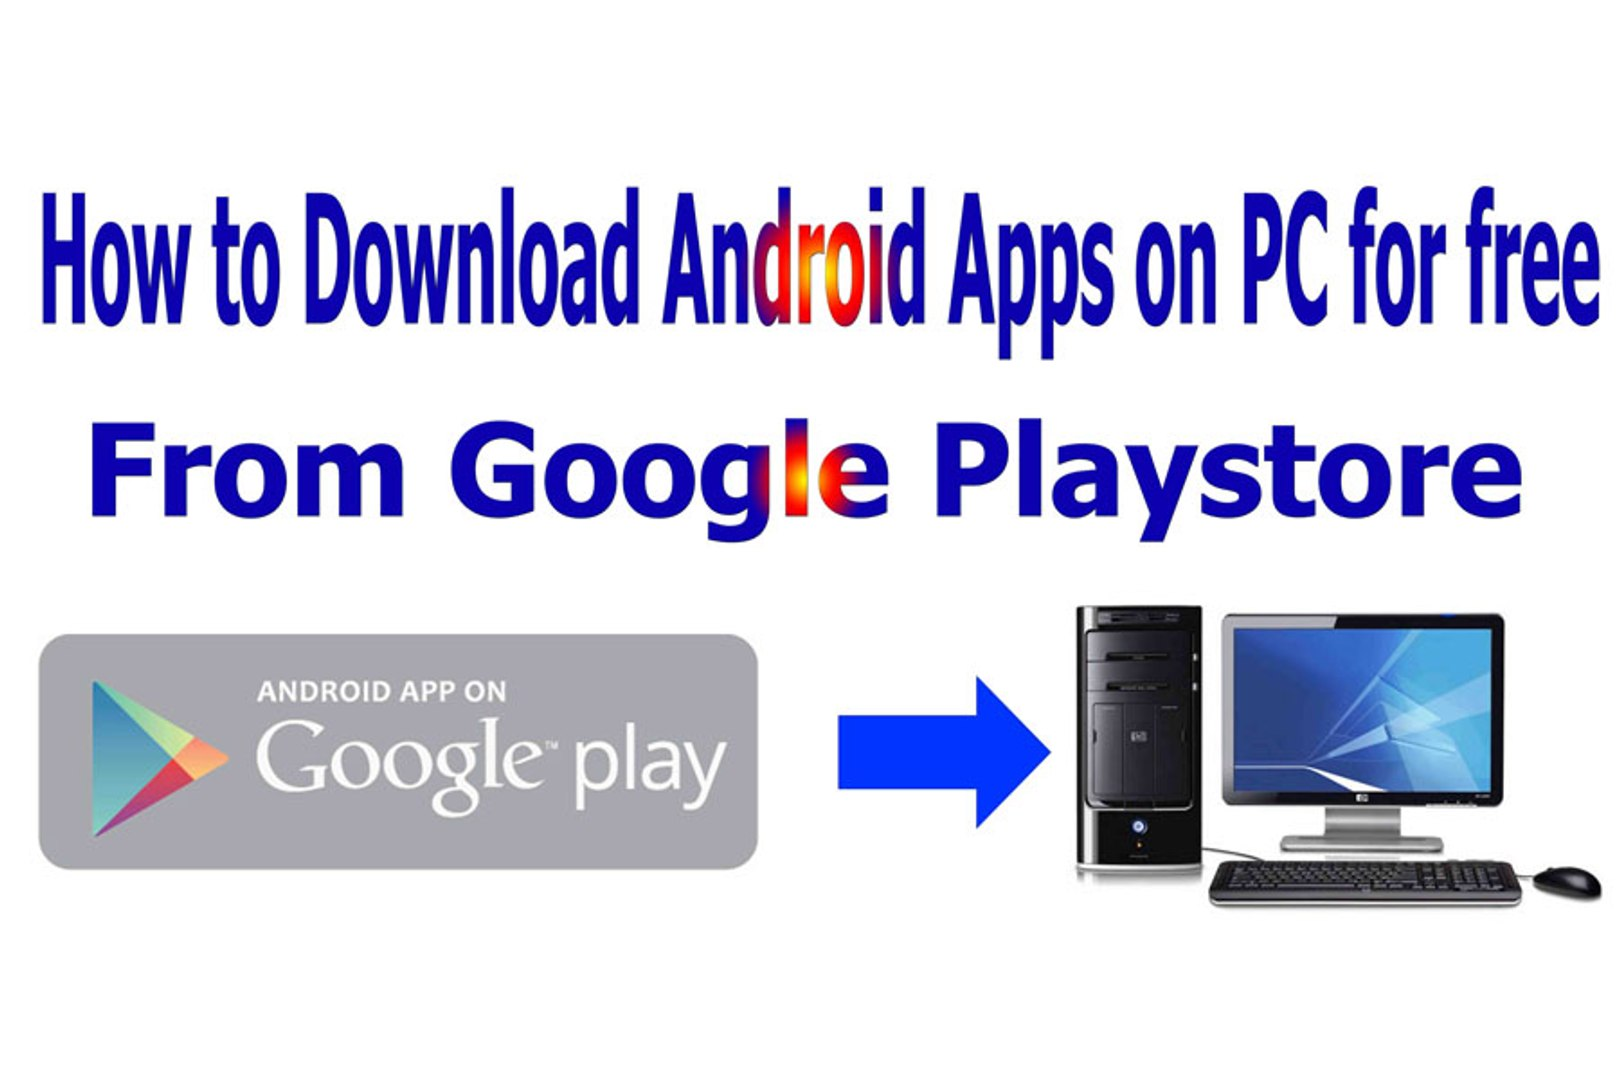 How to Download Android Apps on PC for free From Google Playstore